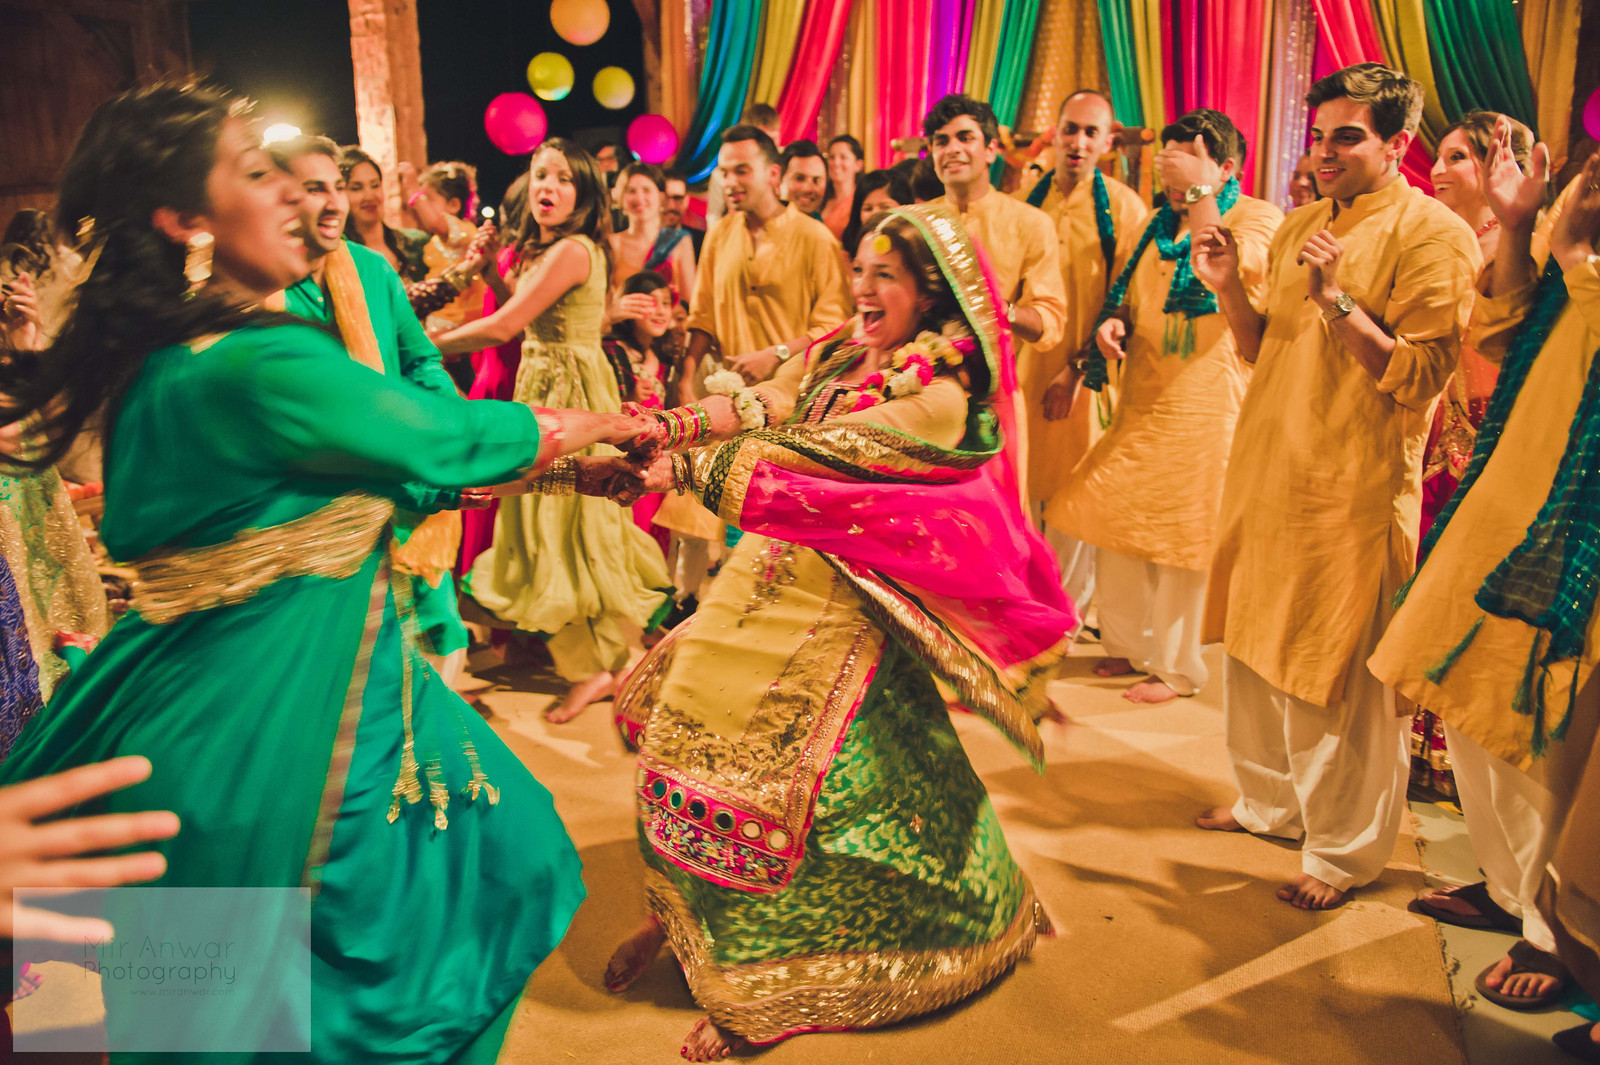 Mehndi Party Attire : Singing and dancing at a pakistani mehndi party rustic decor by